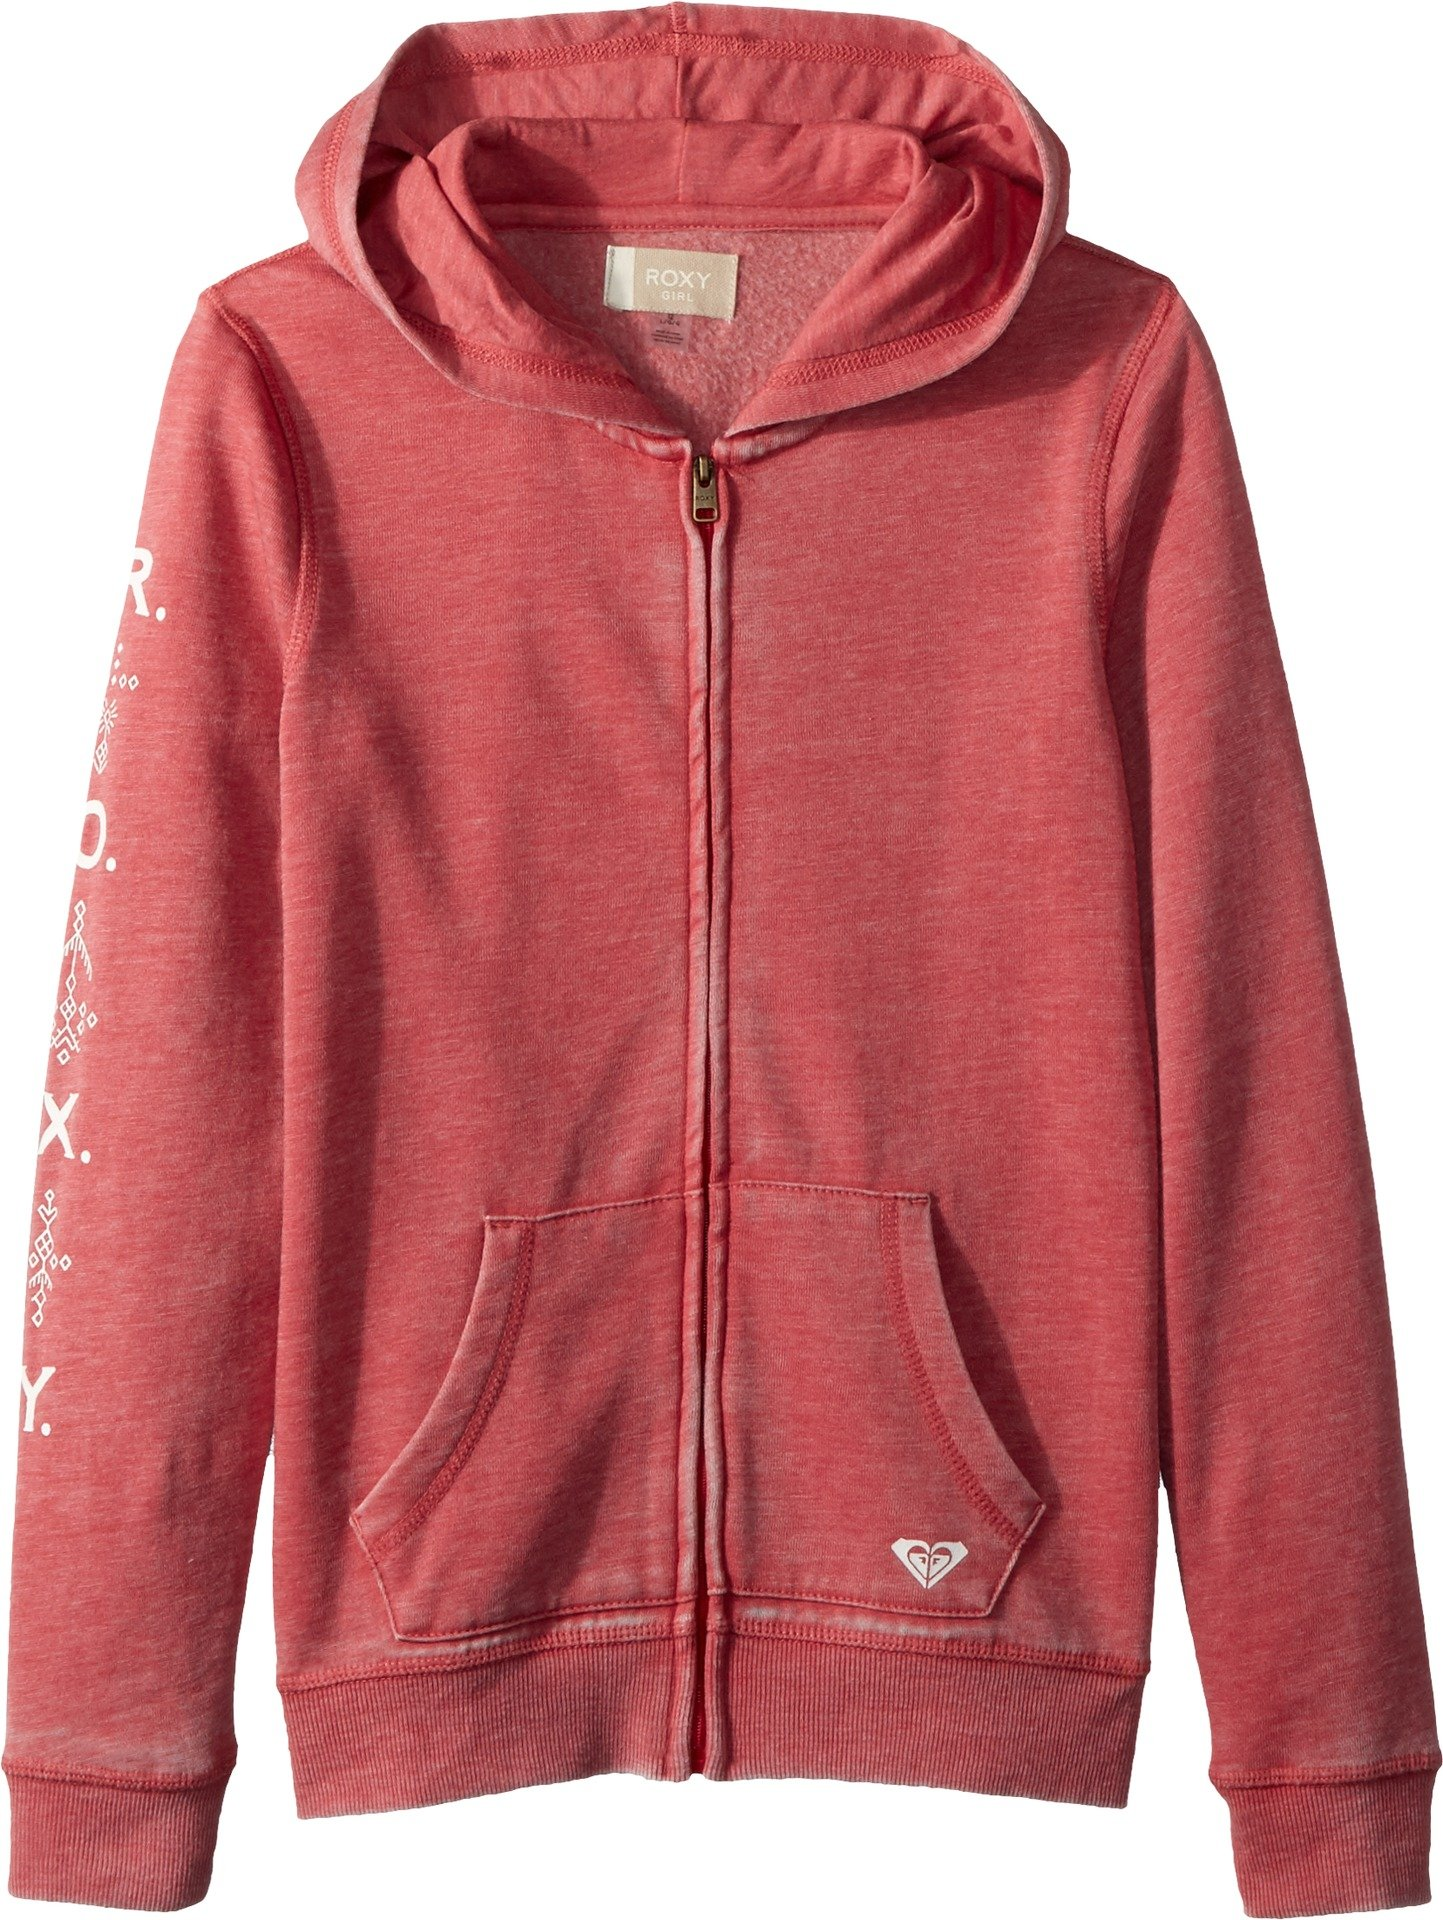 Roxy Big Girls' Dance Forever Zip-up Hooded Sweatshirt, Holly Berry, 10/M